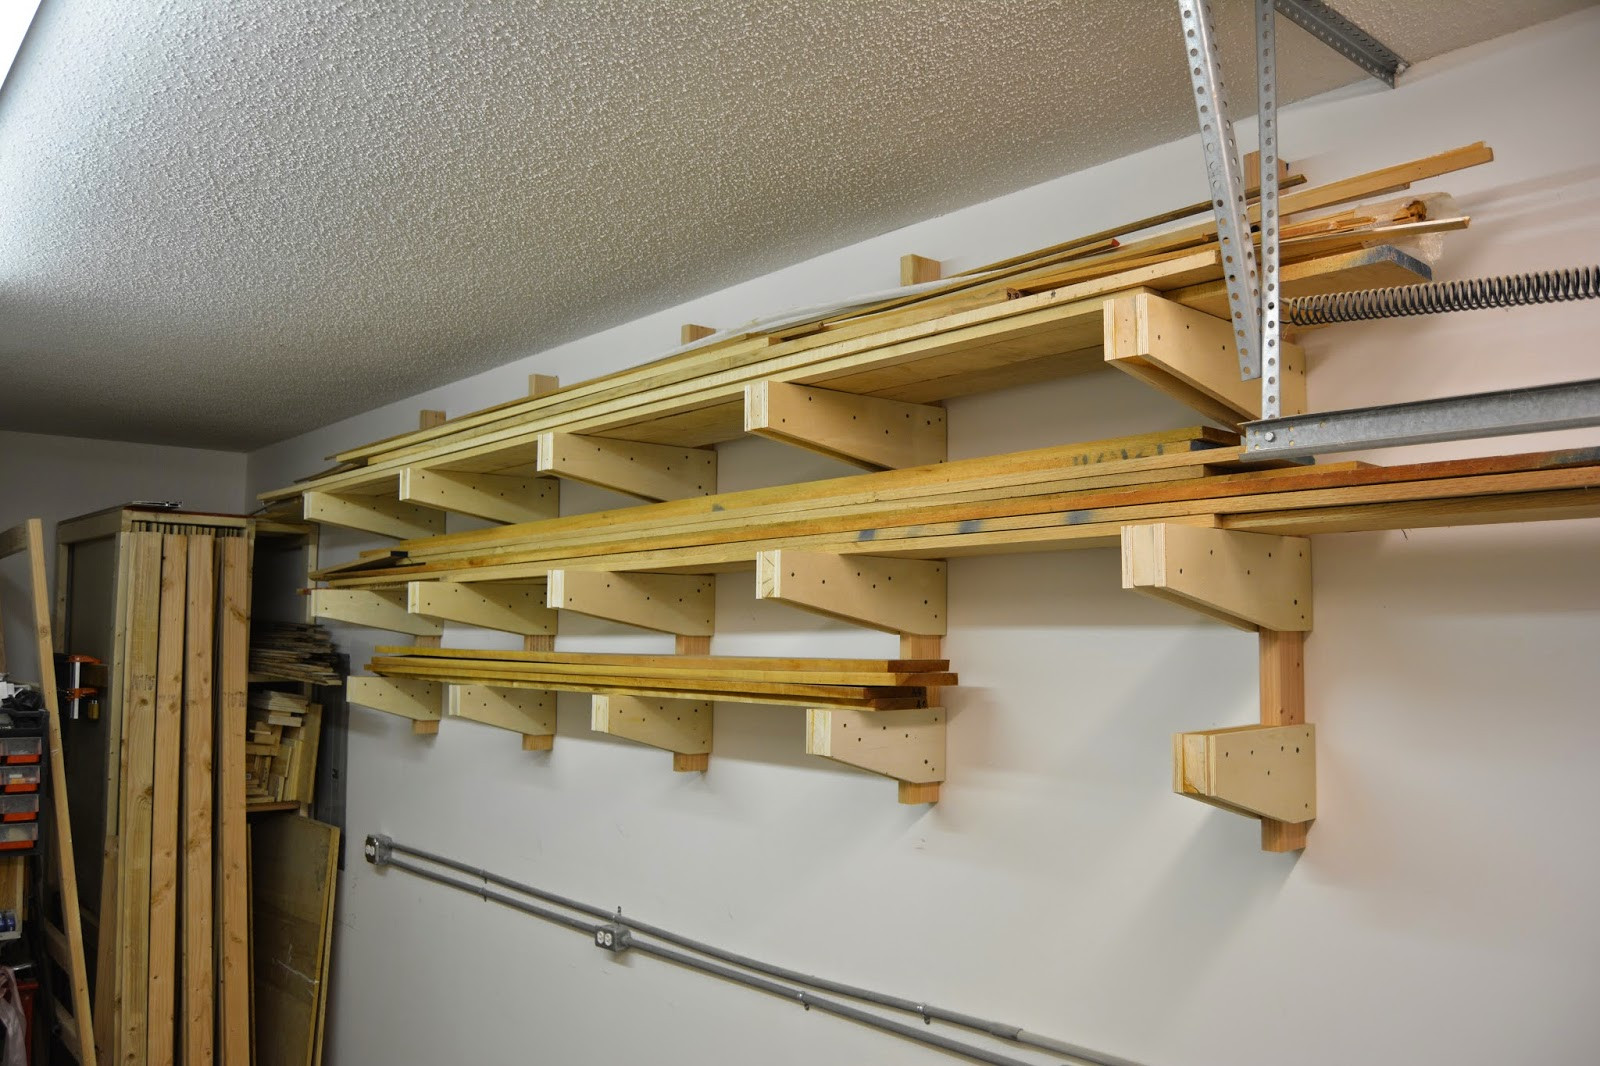 Best ideas about Lumber Rack DIY . Save or Pin Ana White Now.